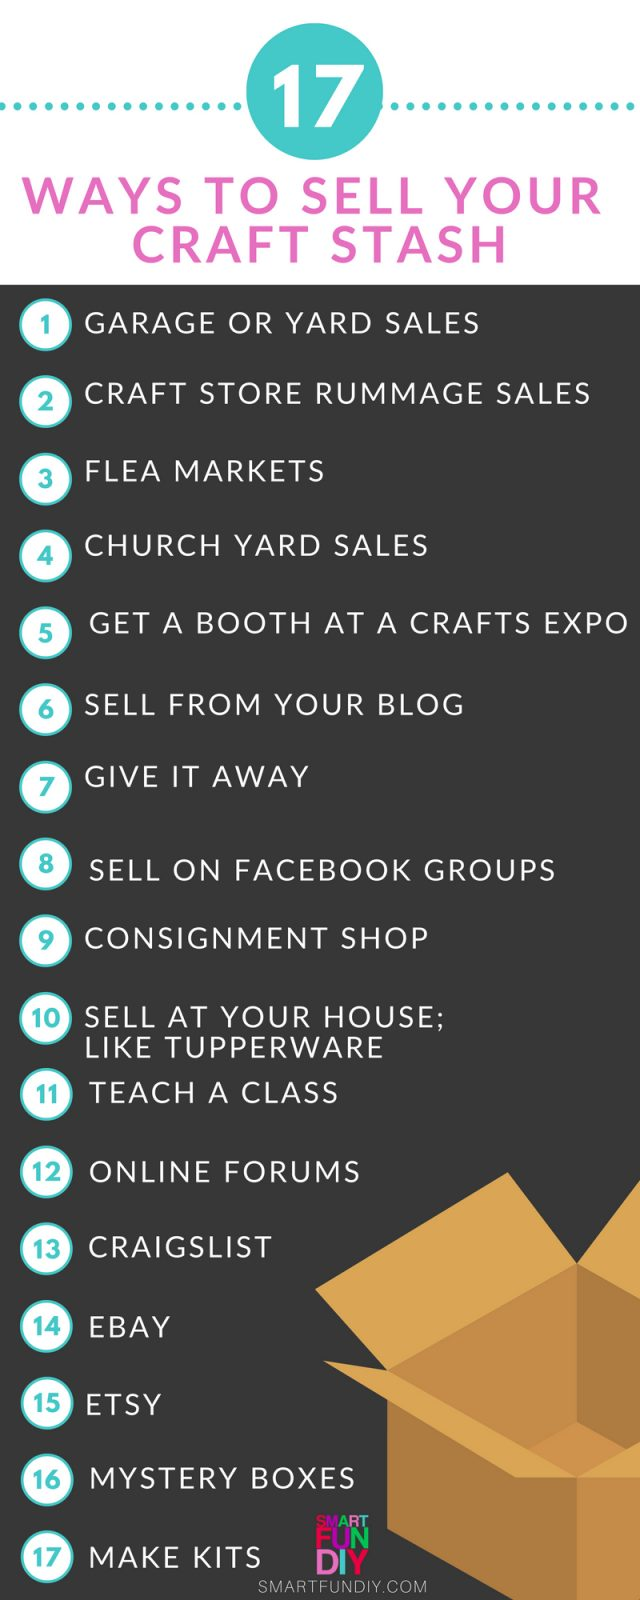 list of 17 ways to sell your craft stash